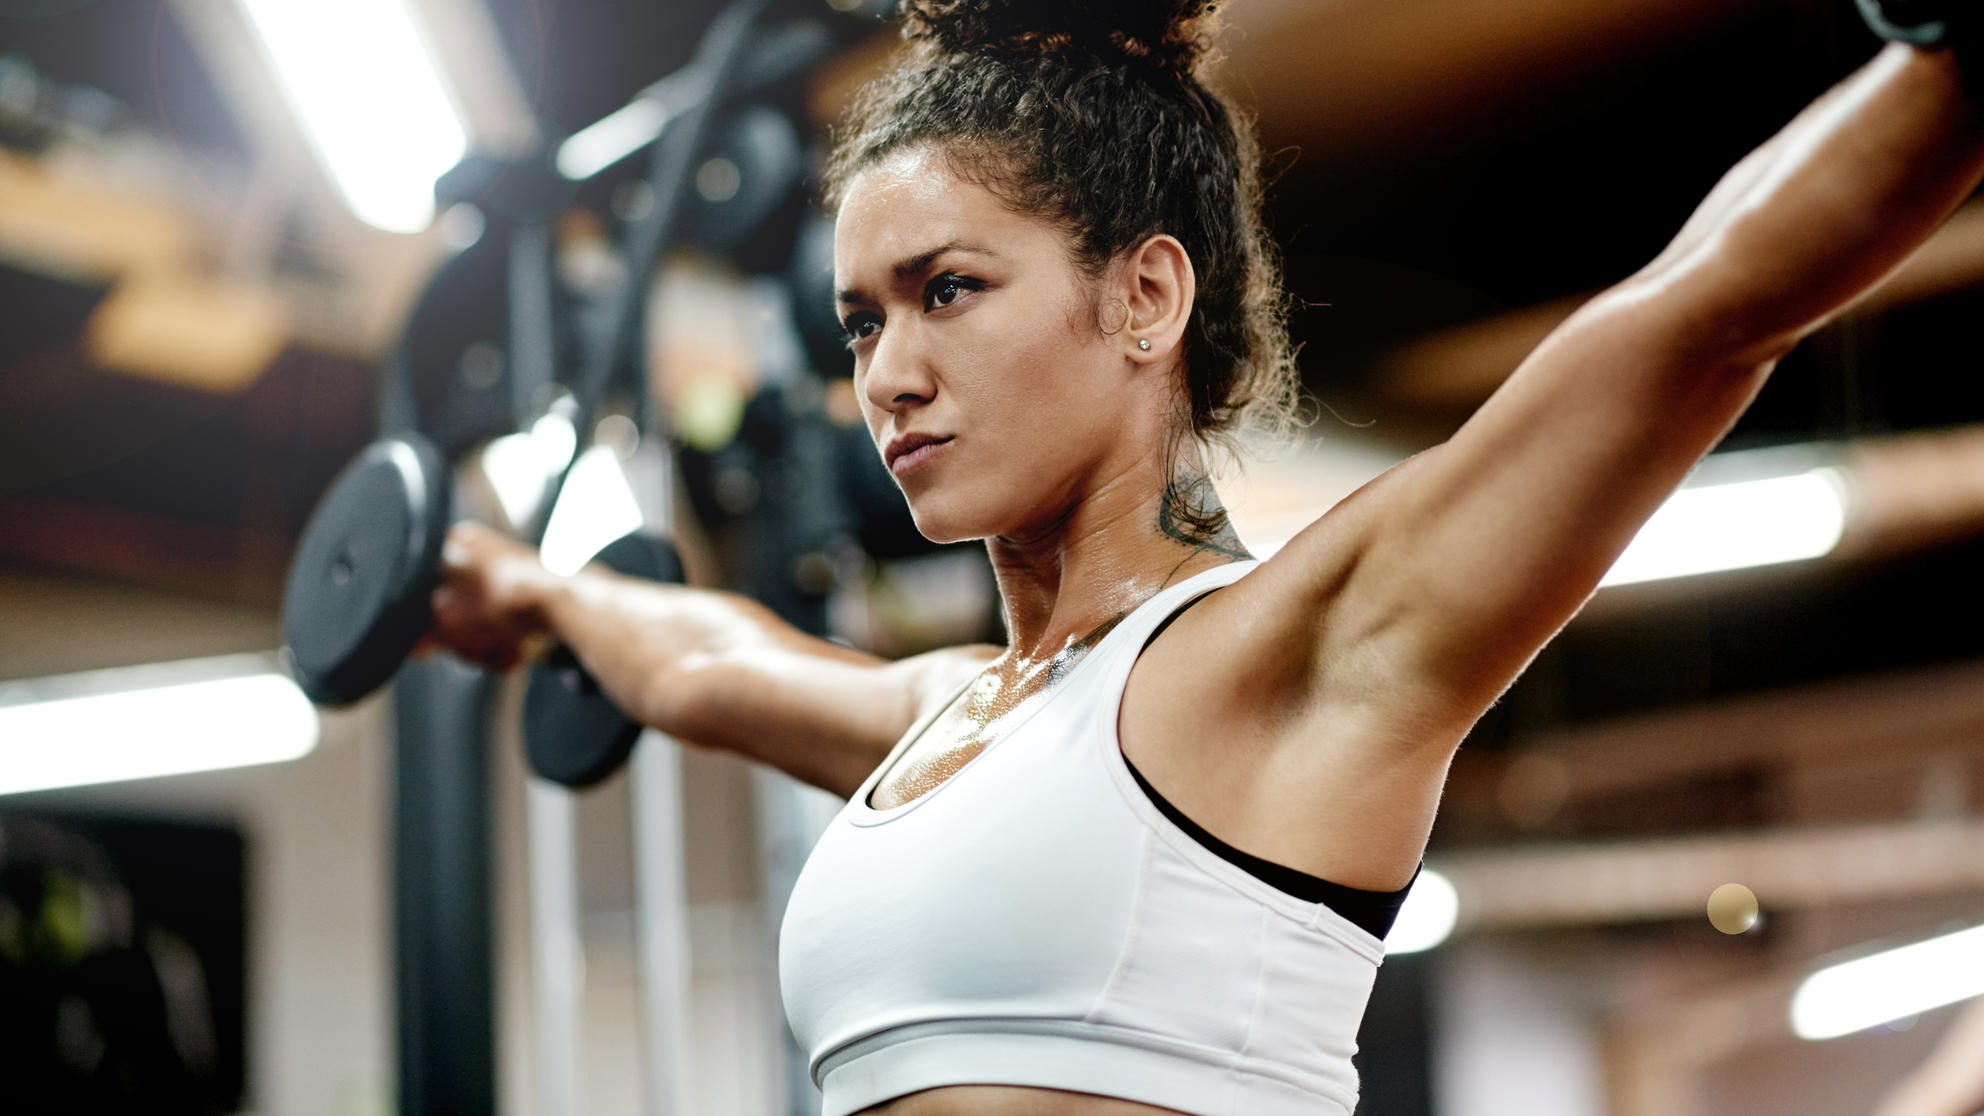 7 Upper-Body Exercises That Banish Bra Bulge